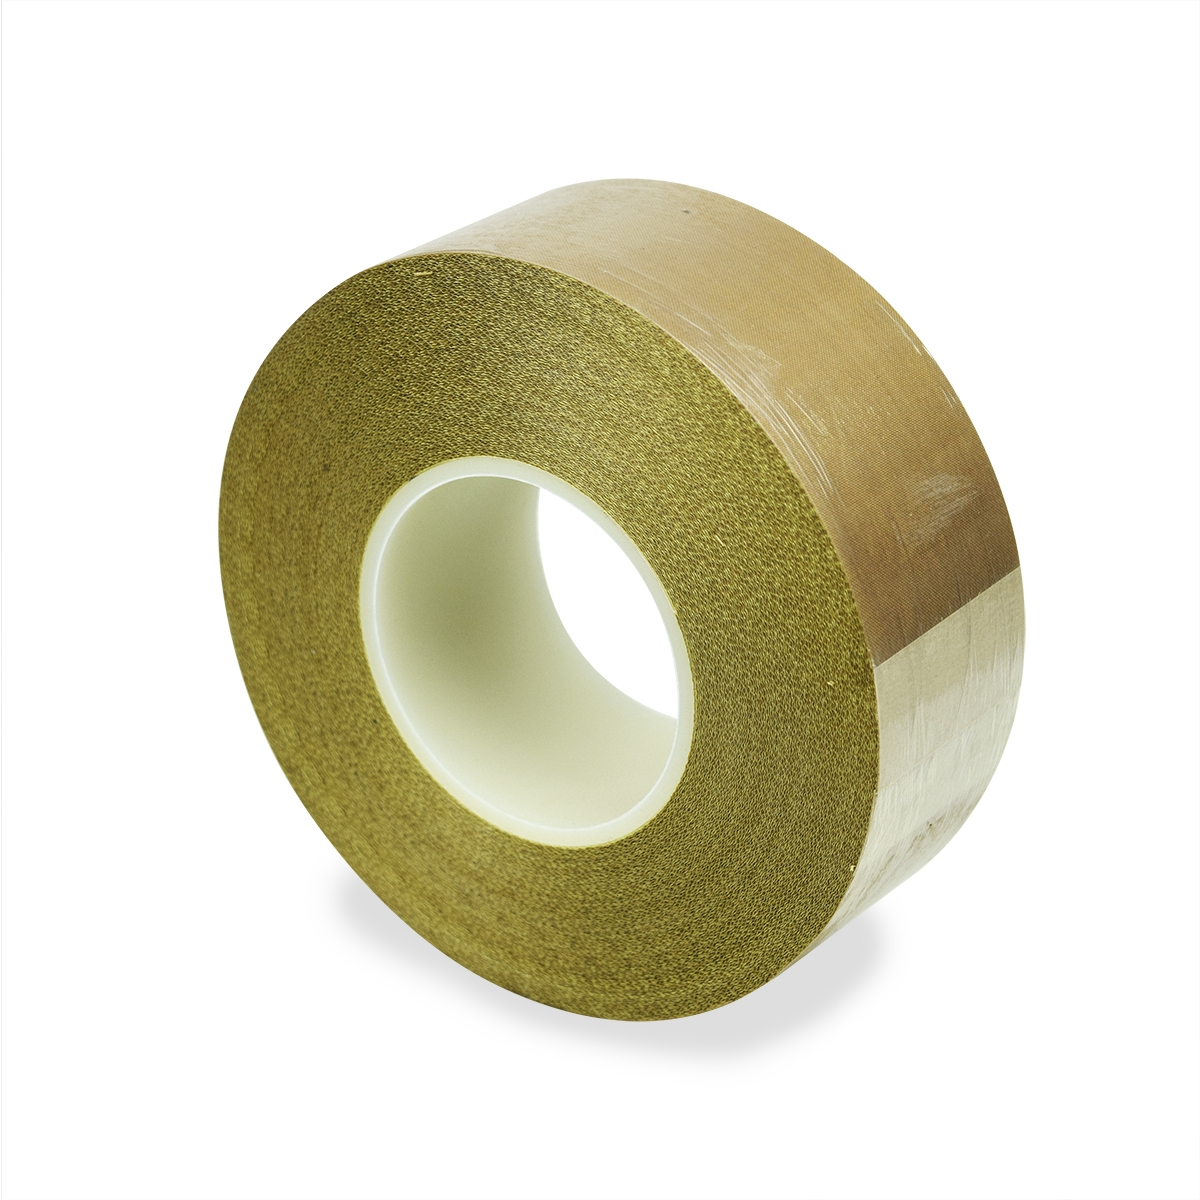 "2.25"" Teflon Tape for Heat Seal Bars Ultravac 225, 250, 400, 500, 550, 600, 700 840170"